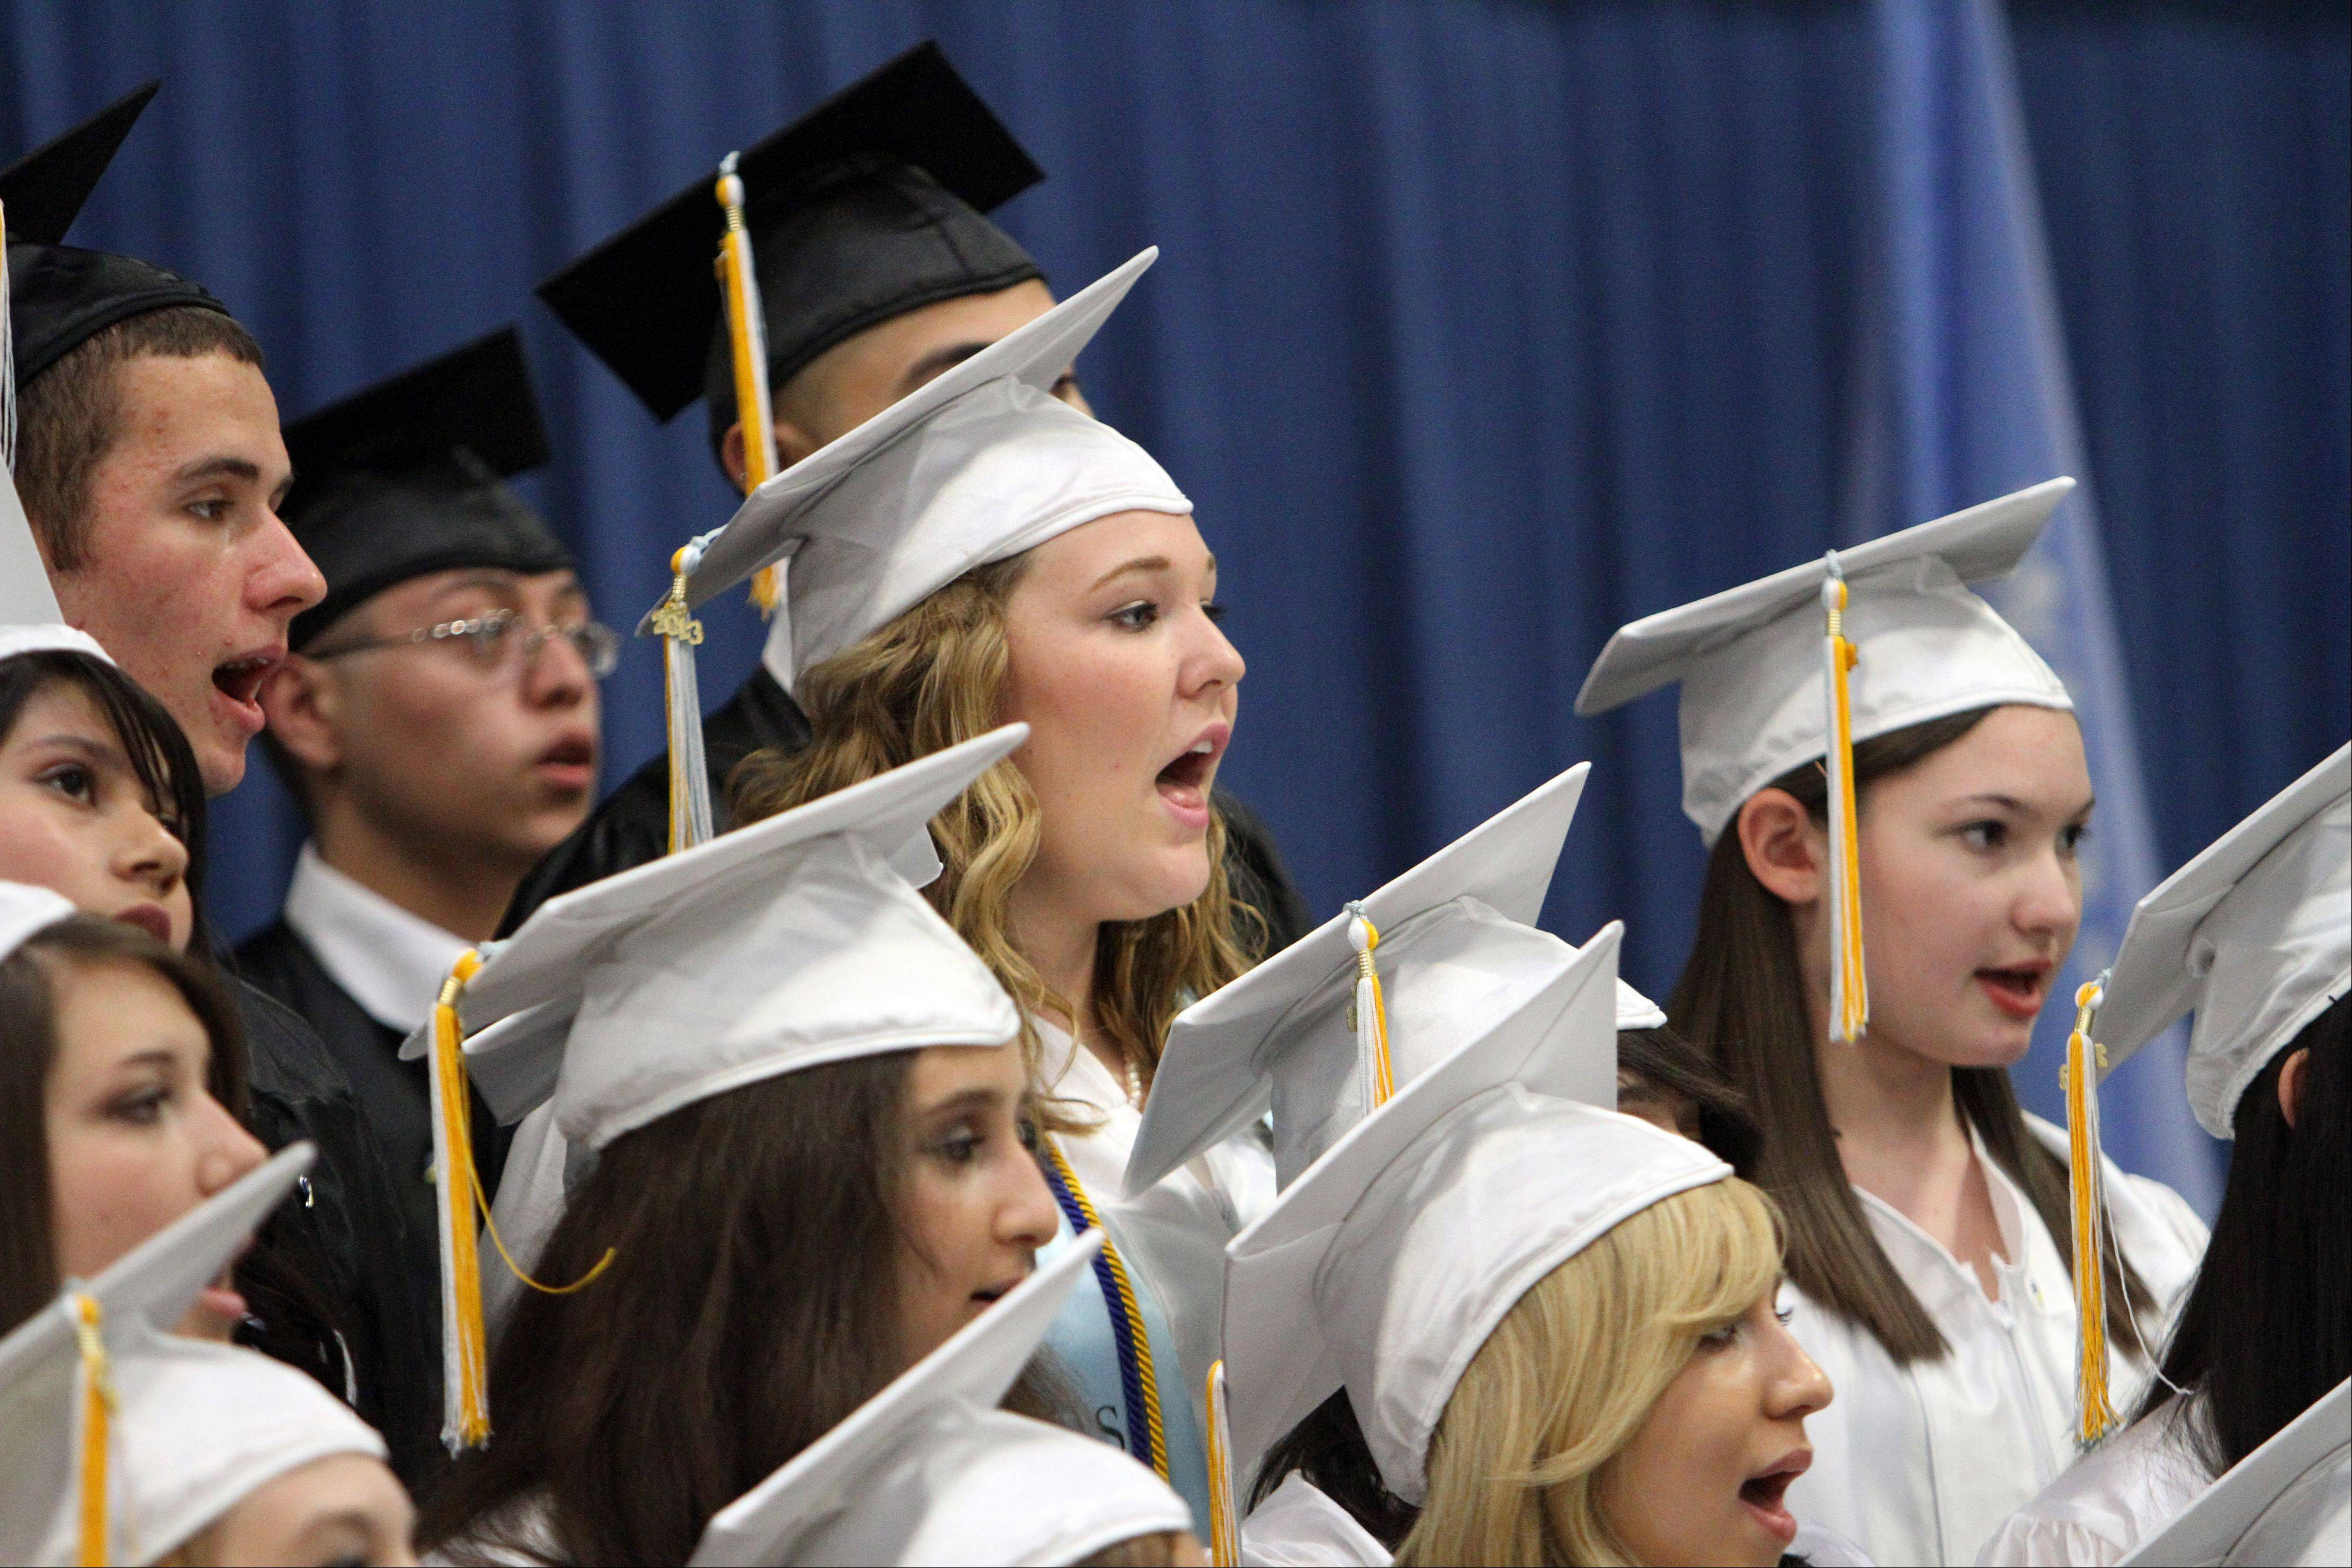 The Maine West senior choir performs during graduation ceremonies Sunday at Maine West High School.